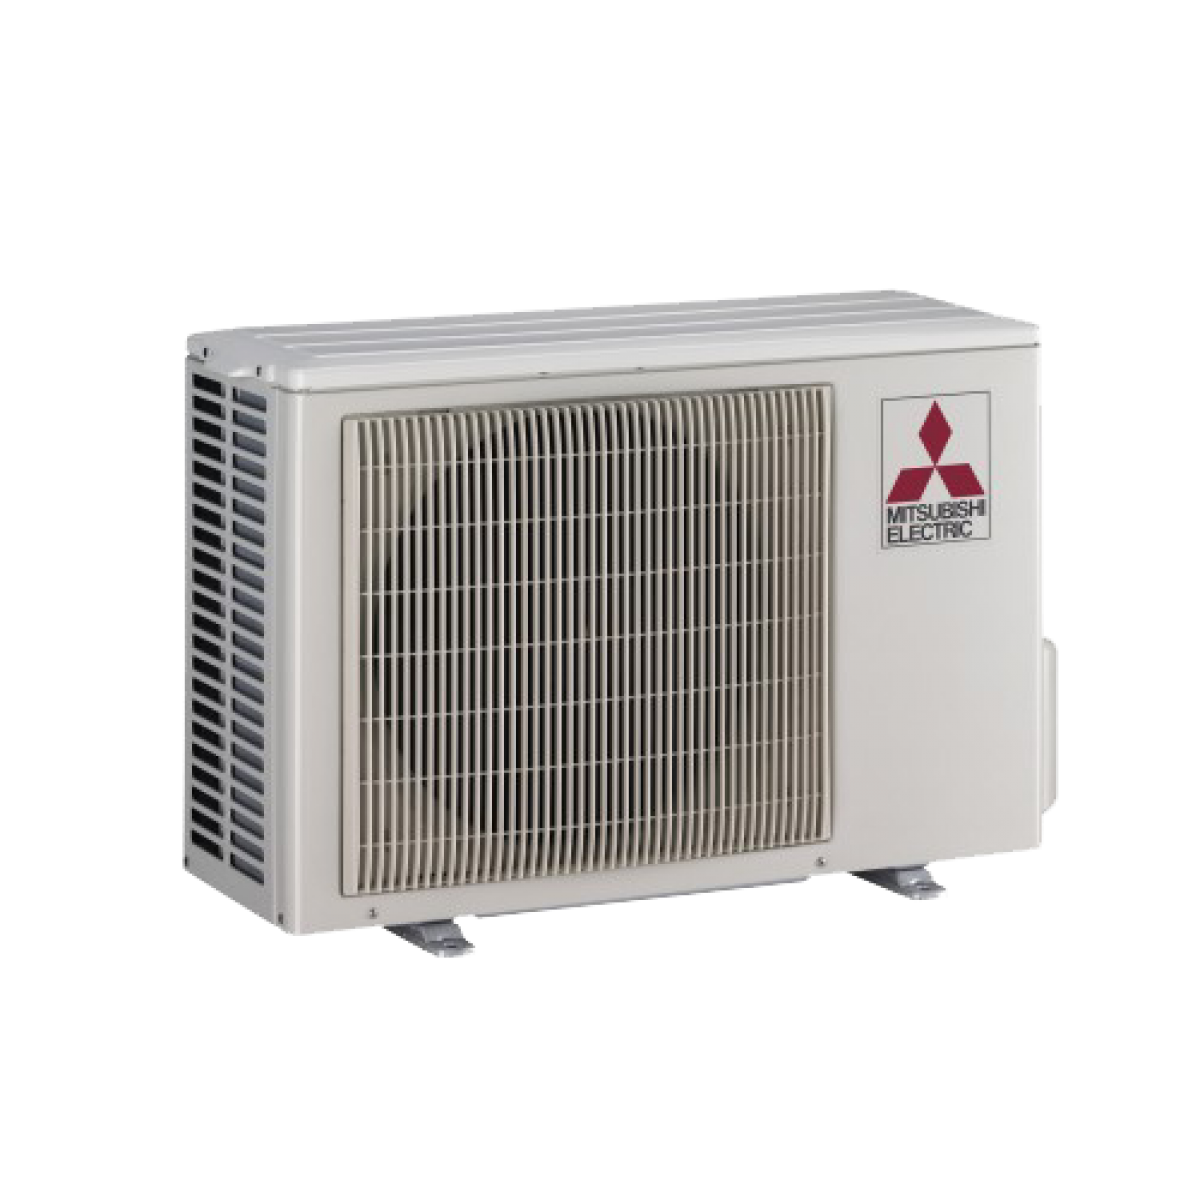 Heat Pump Systems : Mitsubishi k btu seer heat pump system in